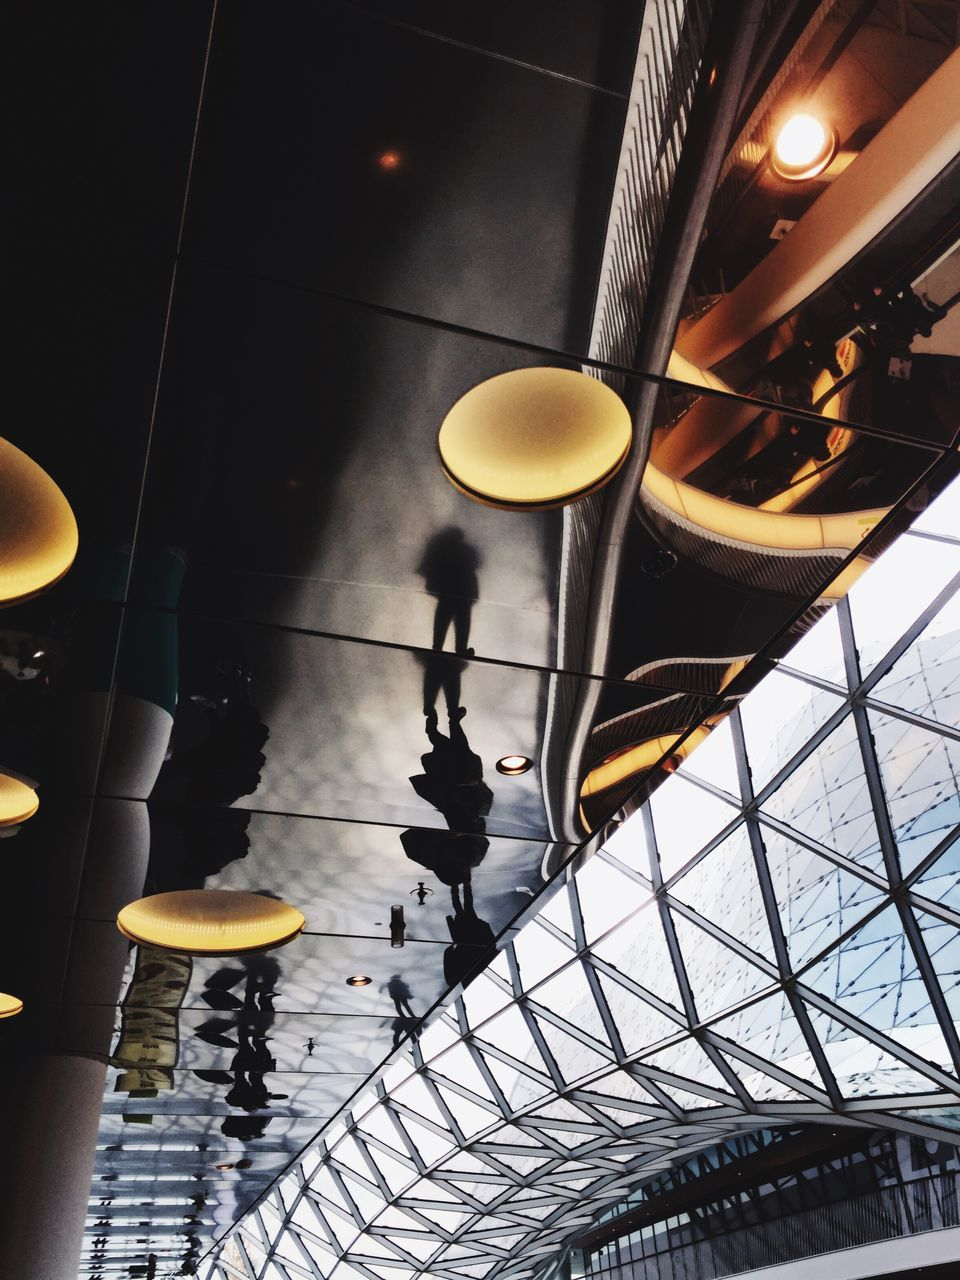 indoors, ceiling, illuminated, real people, architecture, one person, day, people